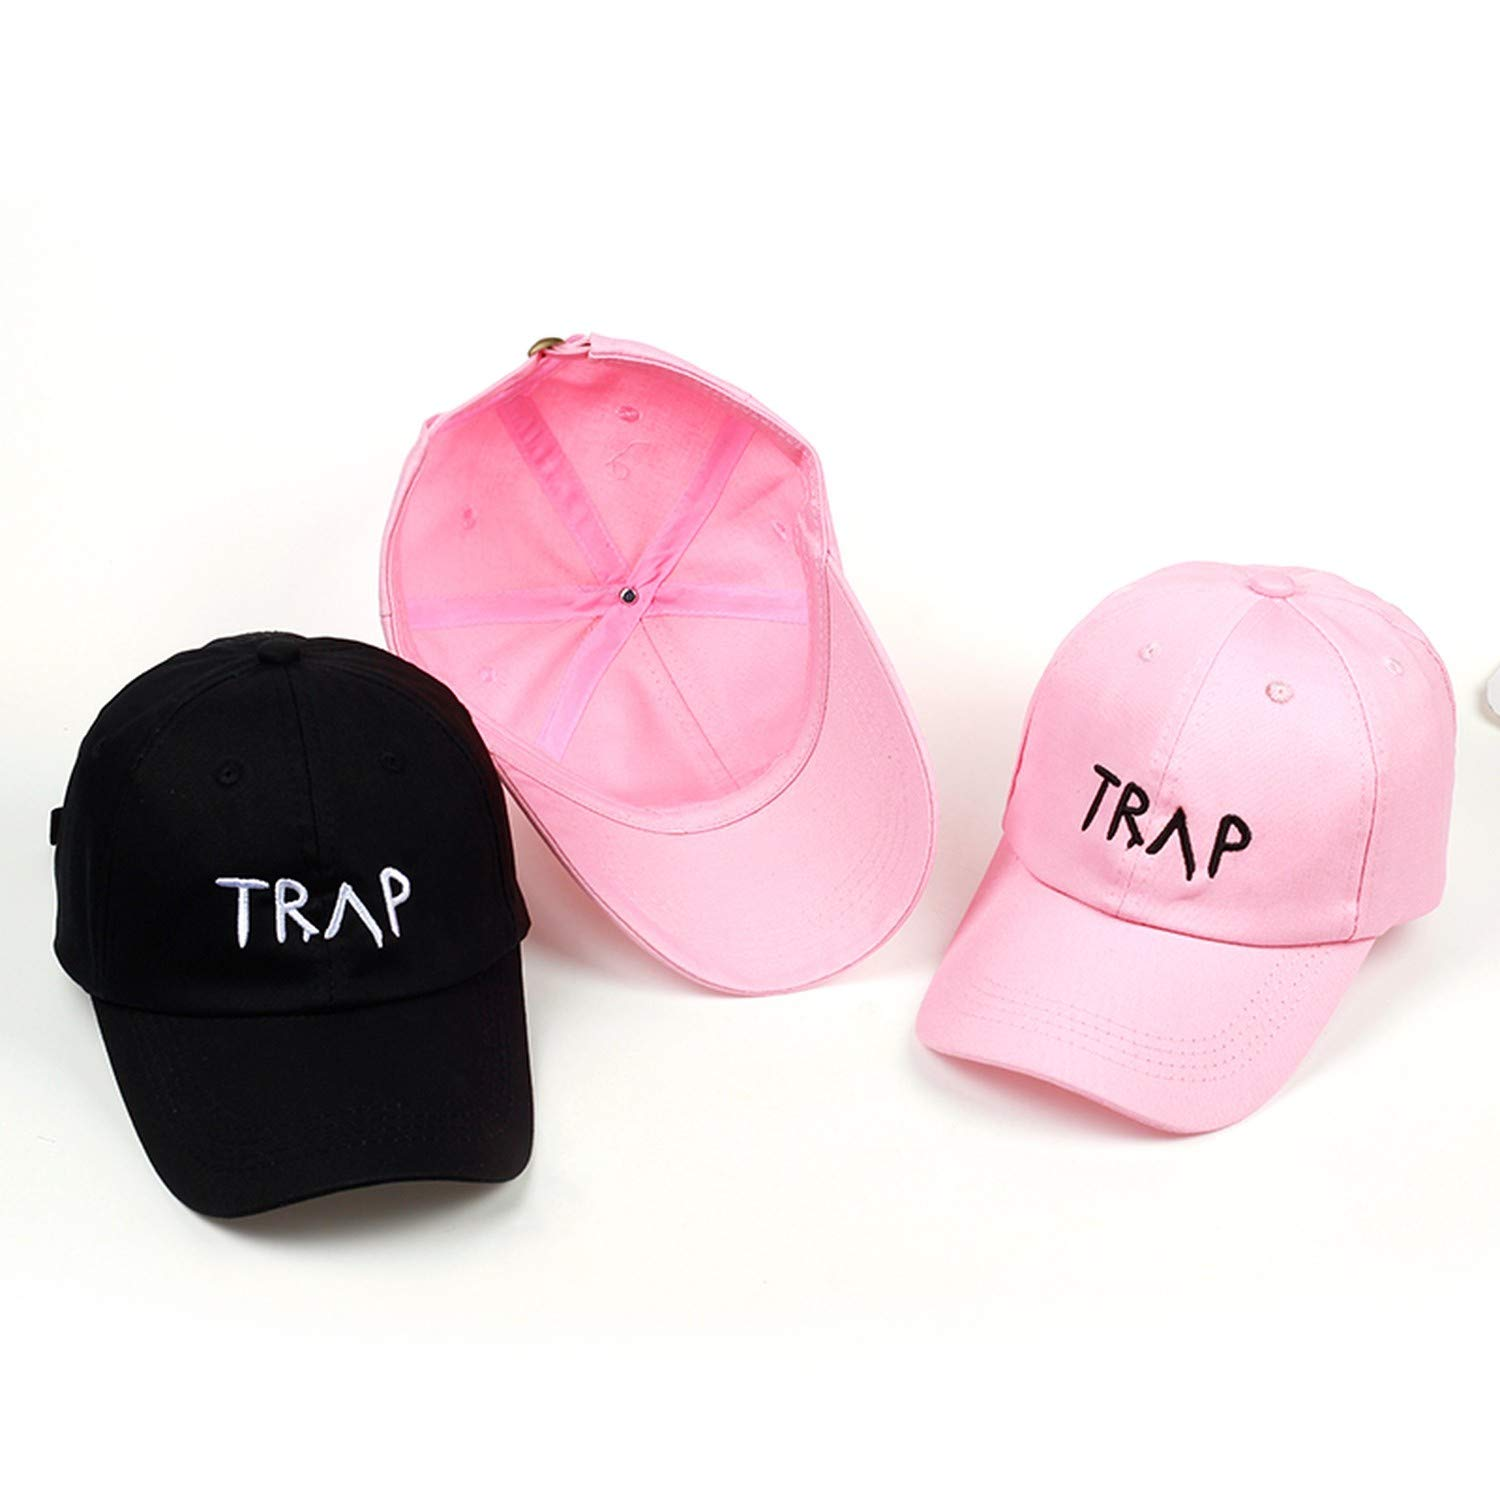 1a4c1959 Amazon.com: 100% Cotton Trap Hat Pretty Girls Like Baseball Cap Trap Music  2 Chainz Album Rap LP Dad Hat Hip Hop Trap Hood Wholesale Custom,Pink A:  Clothing